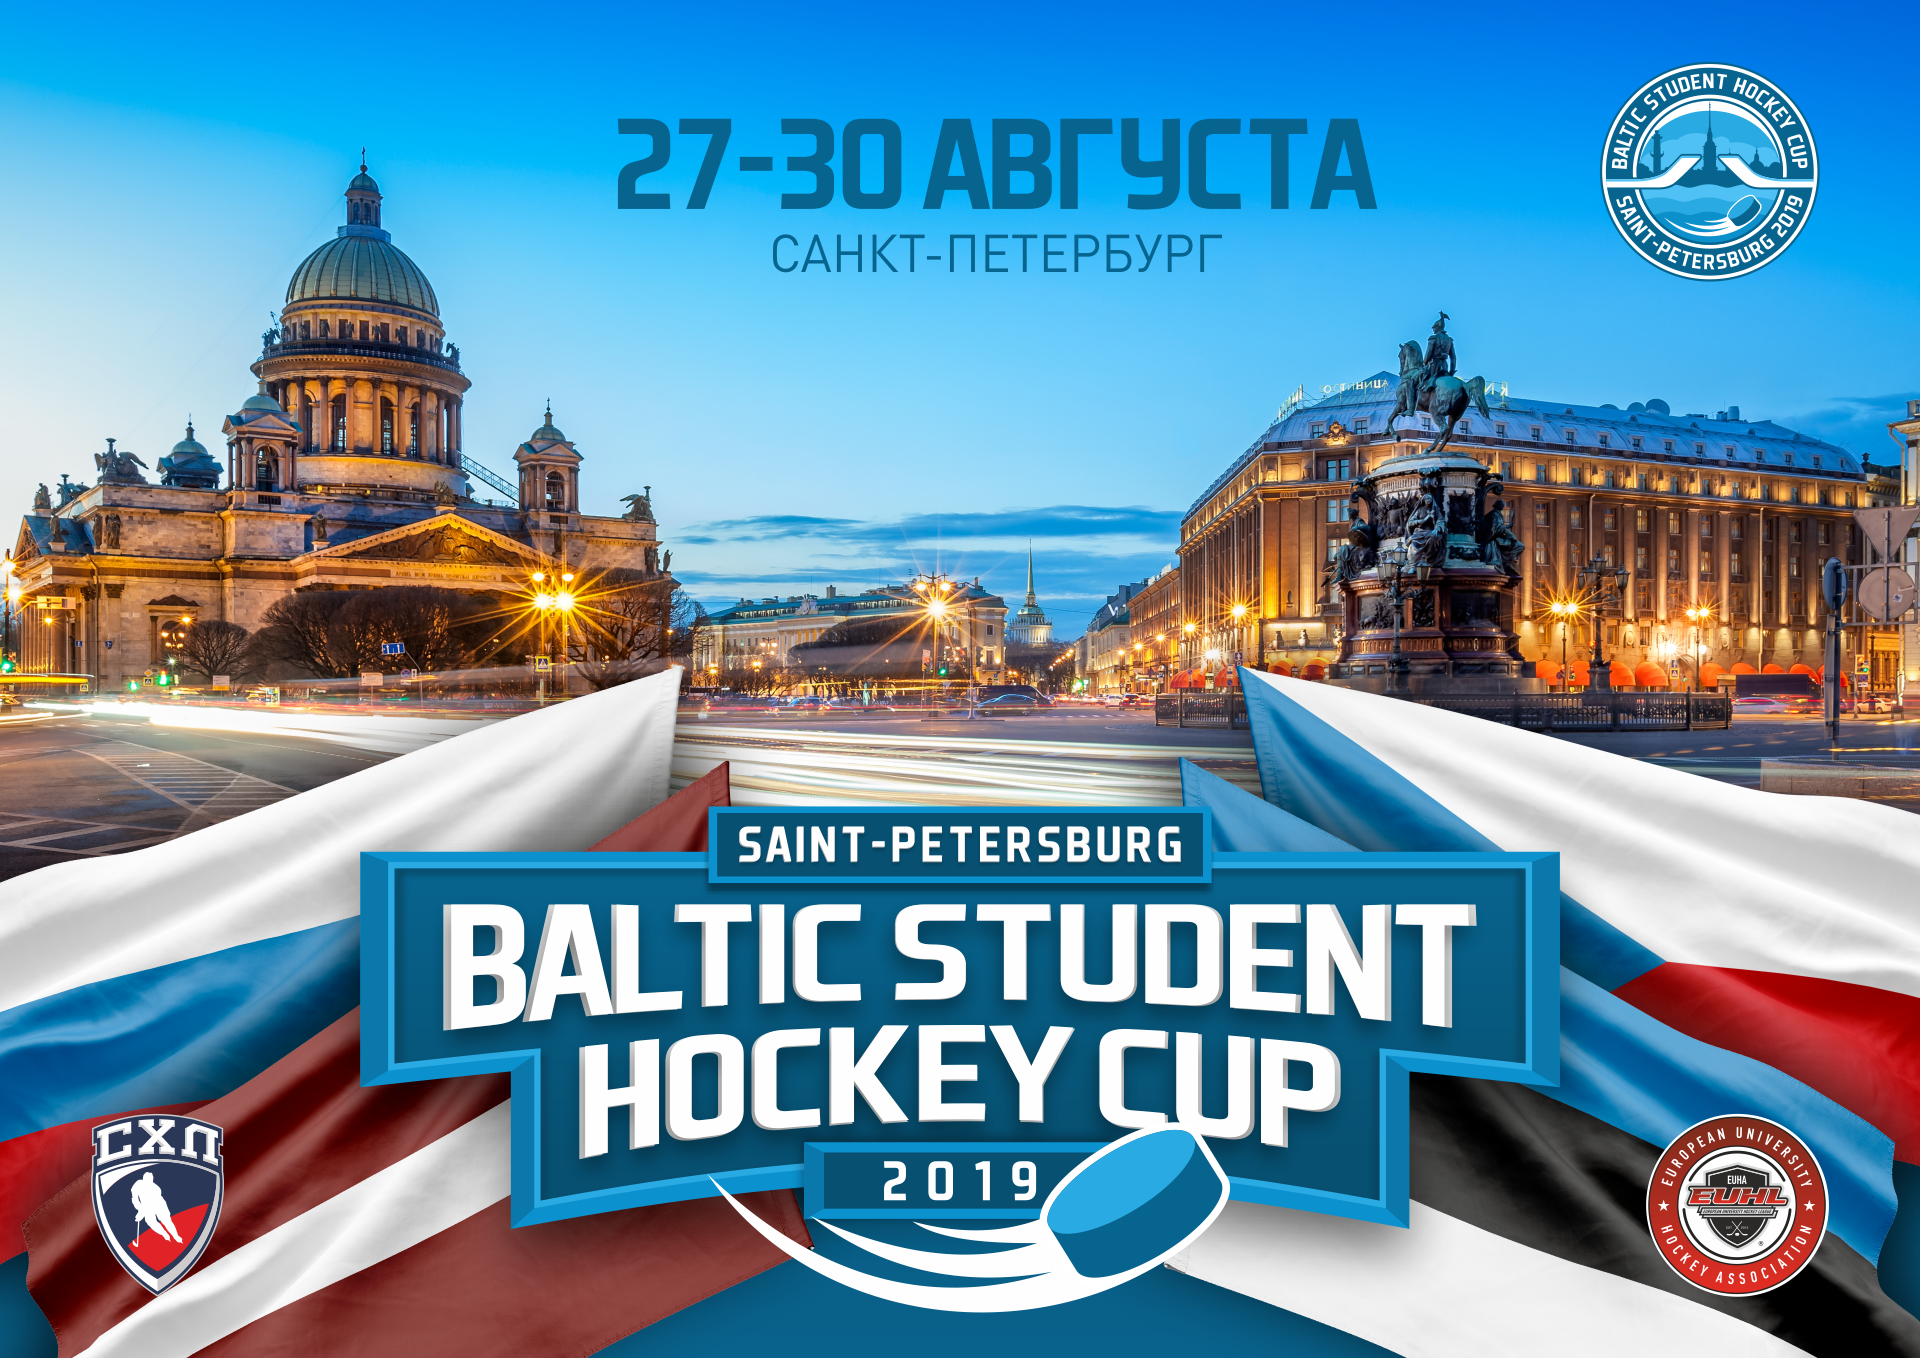 BALTIС STUDENT HOCKEY CUP